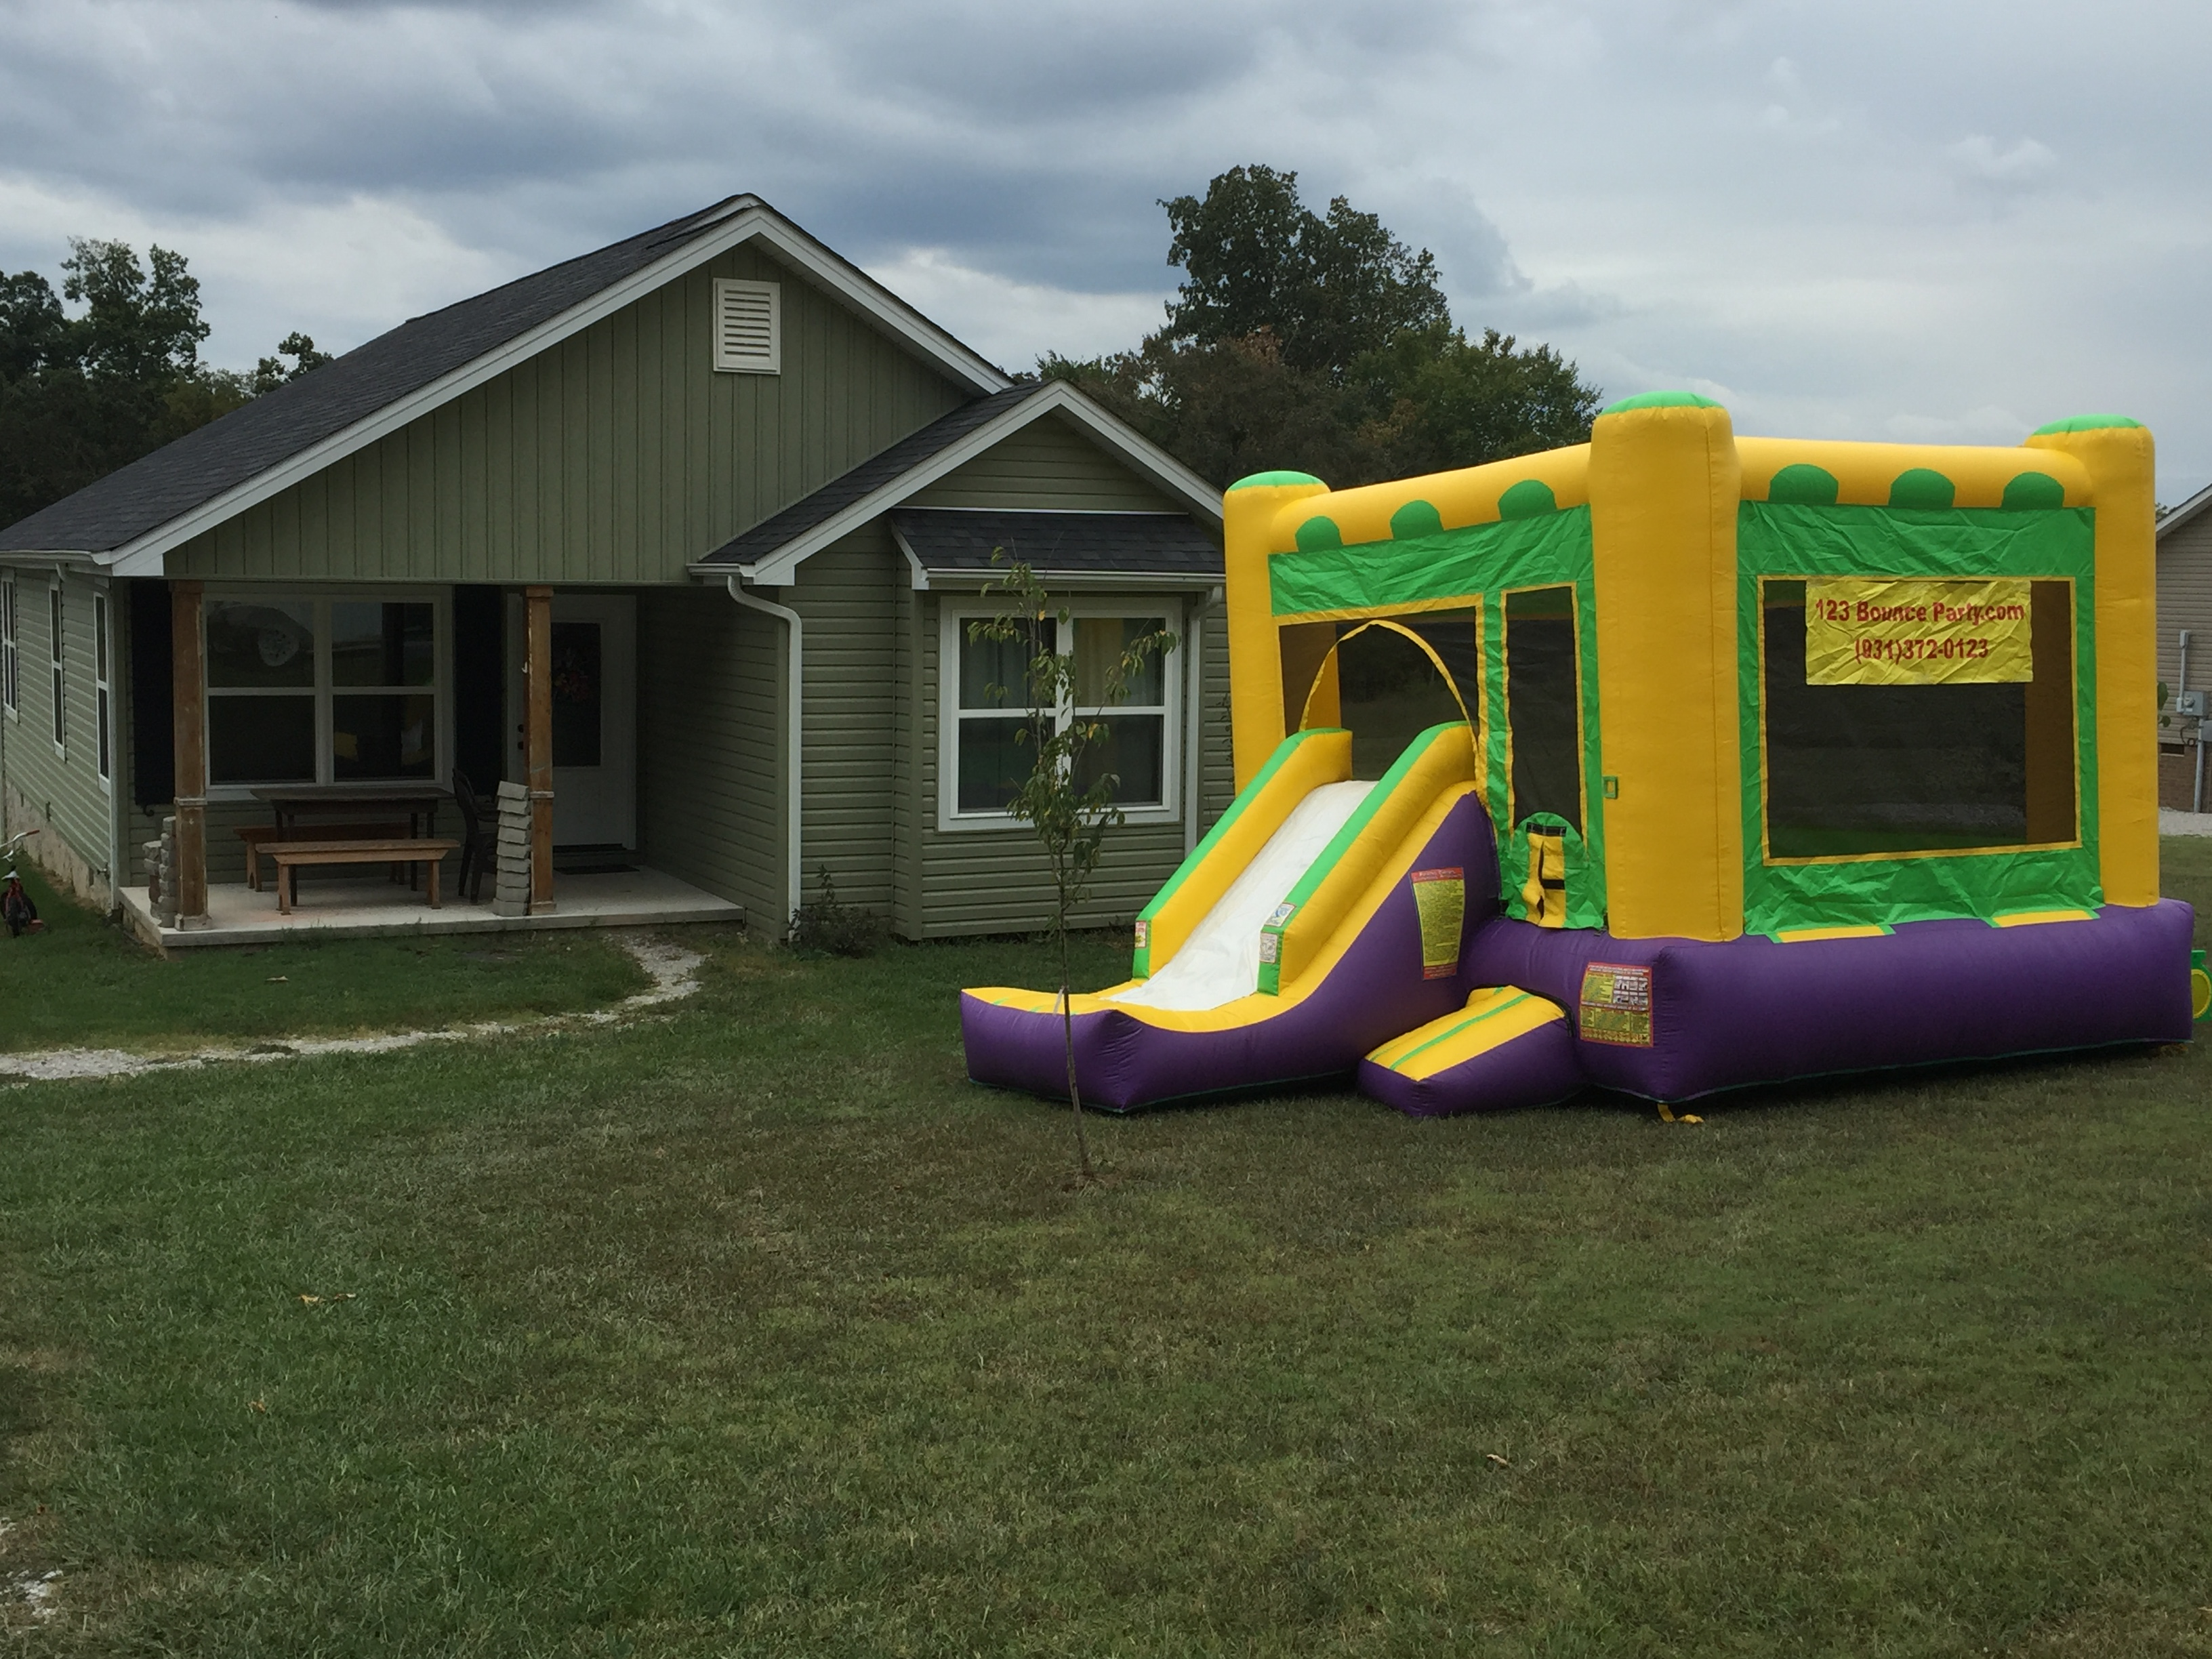 123 bounce party bounce house rentals delivered dunk tank and